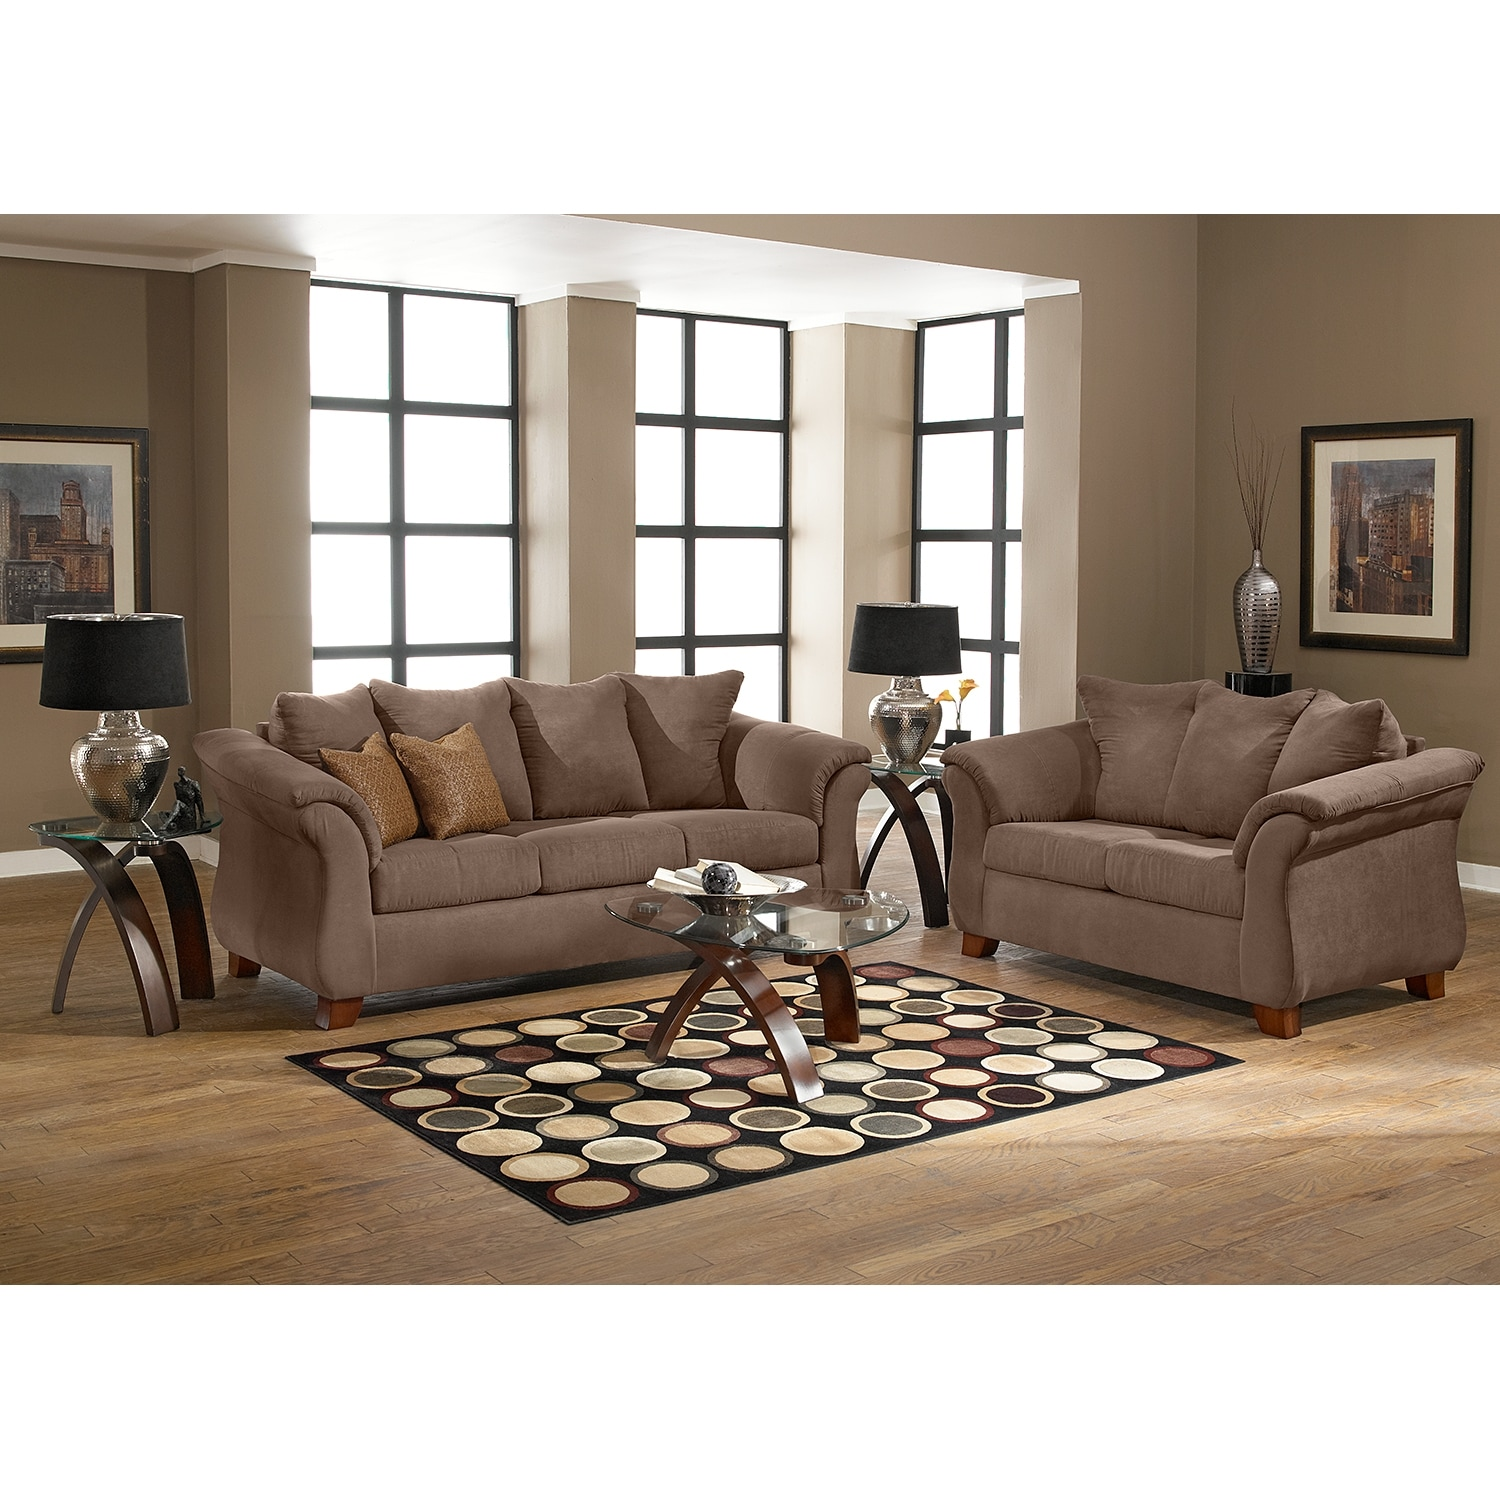 Adrian sofa taupe american signature furniture Living room loveseats